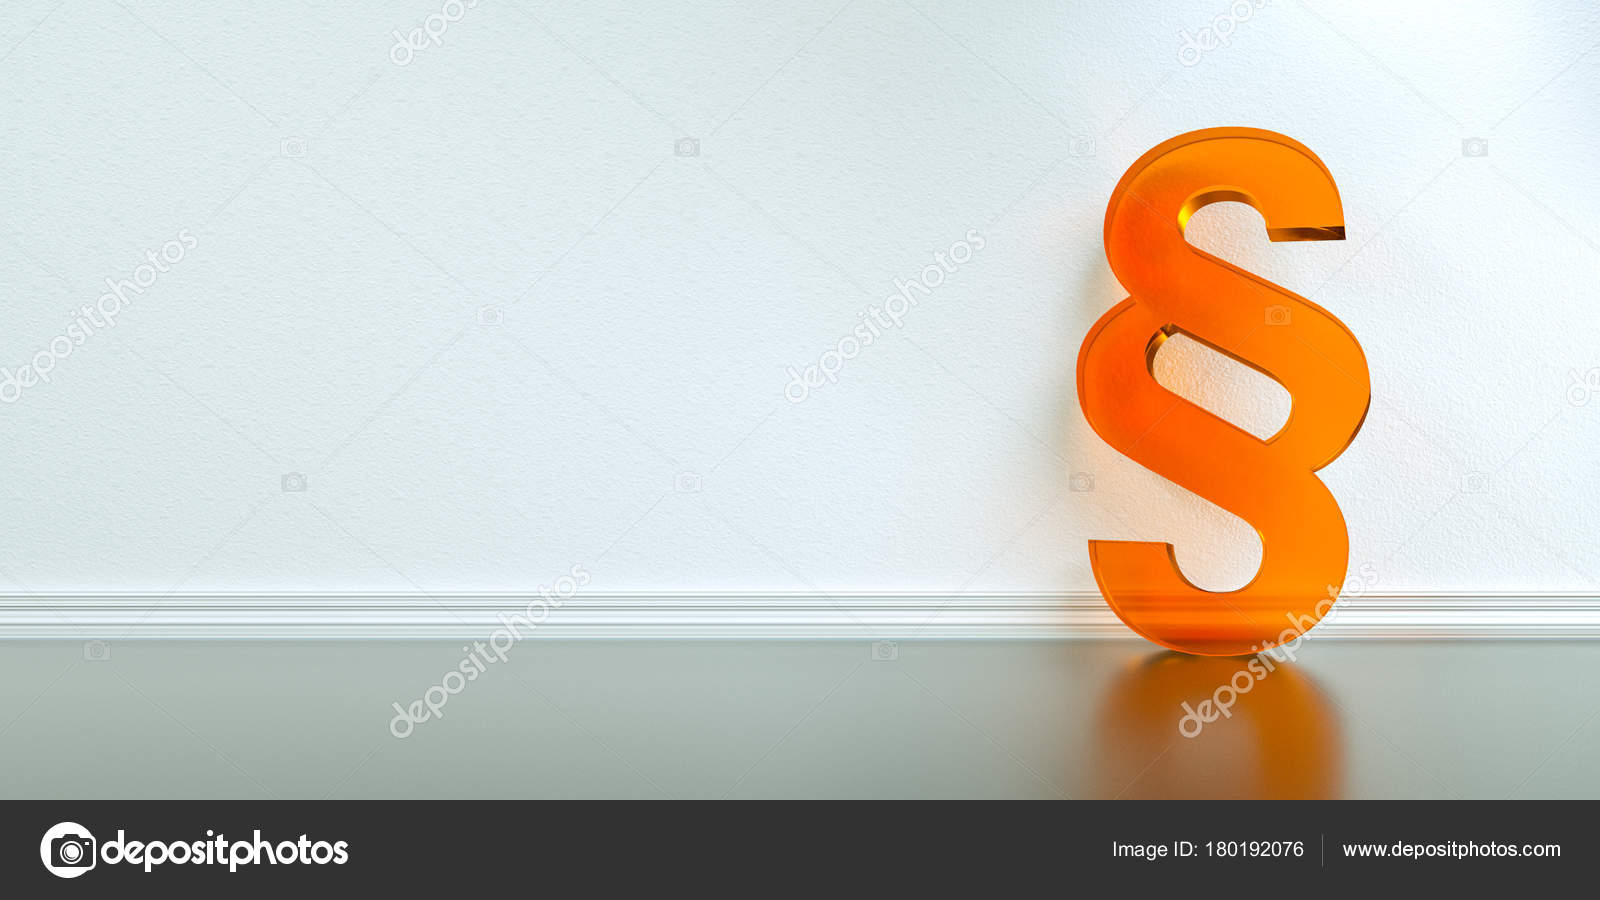 Symbol Law Justice Paragraph Section Sign Floor Apartment Stock